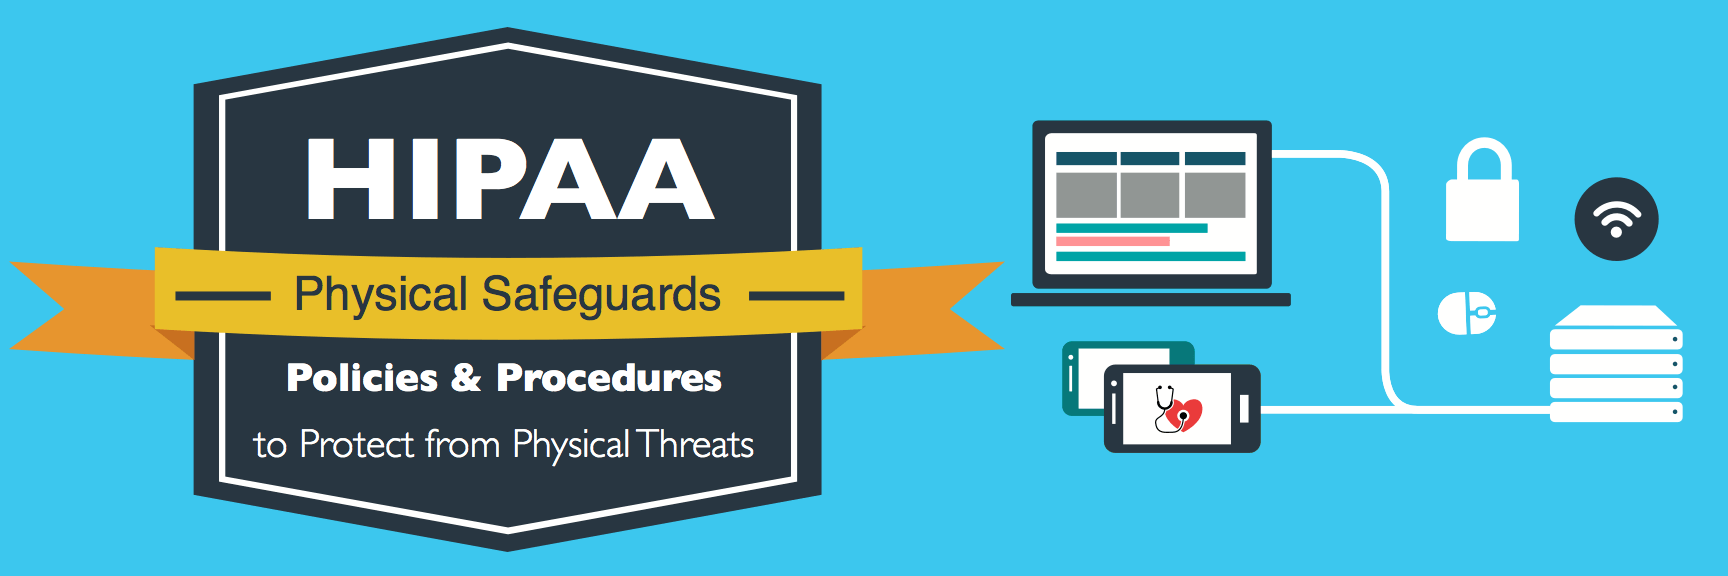 designing hipaa technical safeguards Data security and hipaa compliance  it's important that those designing and testing your software understand what info is protected  technical safeguards:.